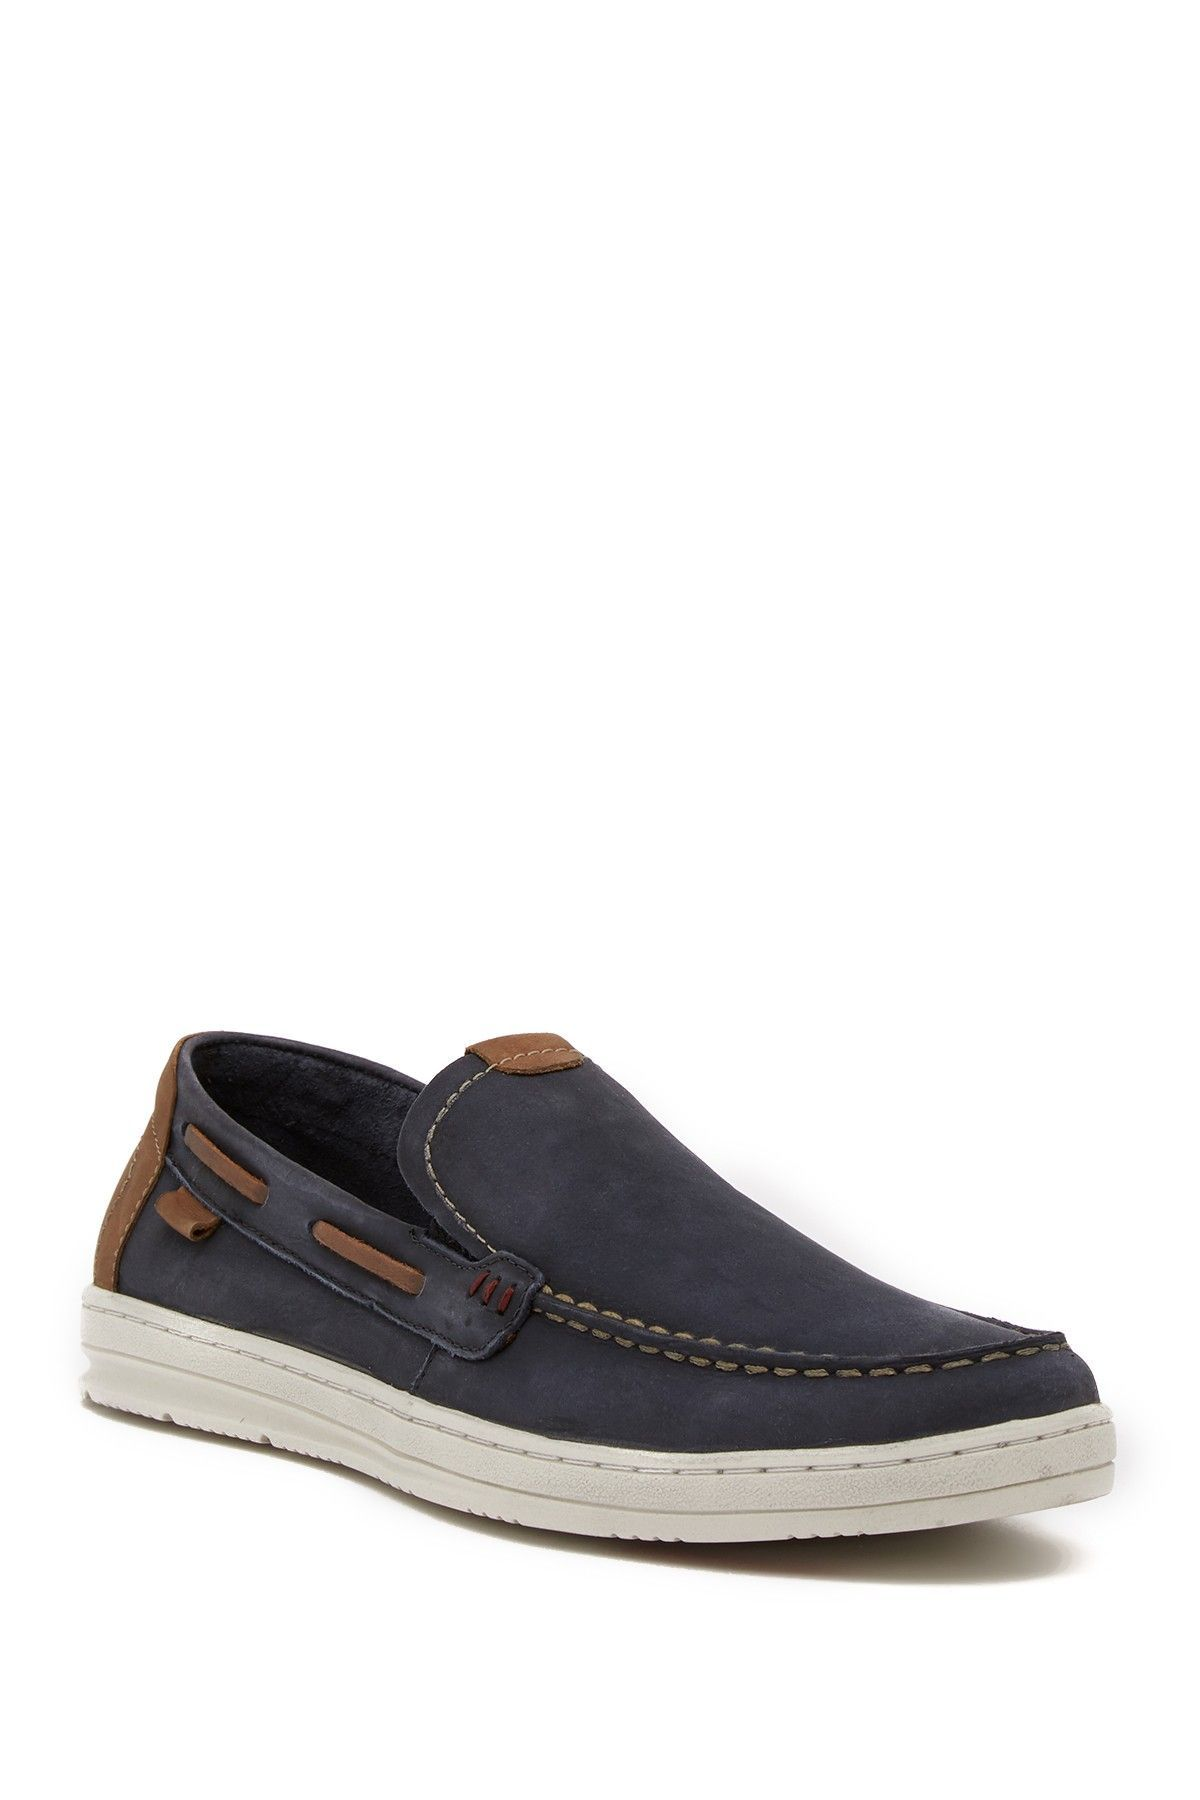 23d1836854b1 Fascinating Cool Tips  Shoes Booties Flat summer shoes vans.Toms Shoes Boys  gucci shoes drawing.Vans Running Shoes.